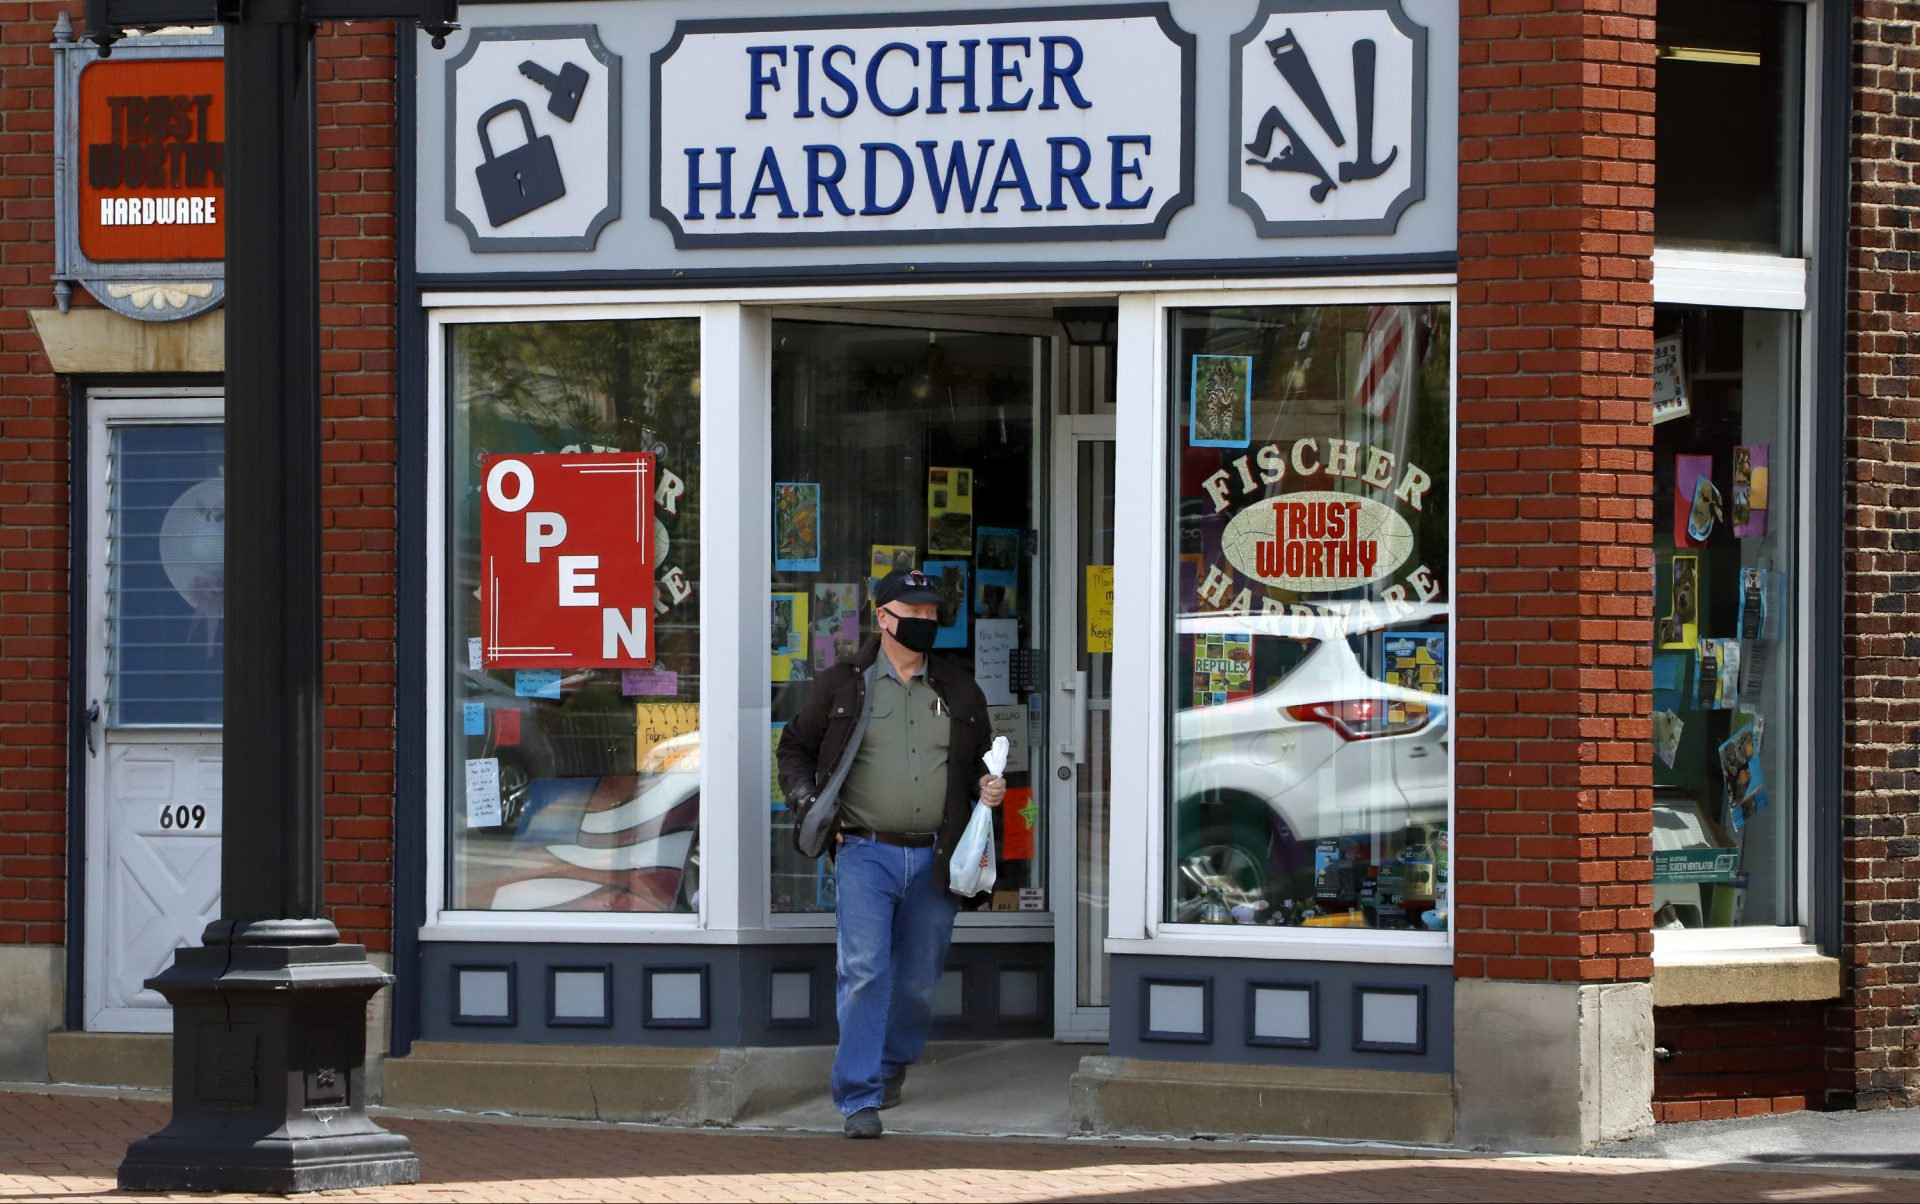 """A customer exits Fischer Hardware in Beaver, Pa., Tuesday, May 12, 2020. Beaver County Commissioners have said they disagree with Pennsylvania Governor Tom Wolf and the county will act as if they are transitioning to the """"yellow"""" phase on May 15. Pennsylvania Governor Tom Wolf announced, May 8, that 13 southwestern Pennsylvania counties, not including Beaver County, that would remain in the """"red"""" phase where the stay-at-home order is still in effect, would move to the """"yellow"""" phase on May 15."""